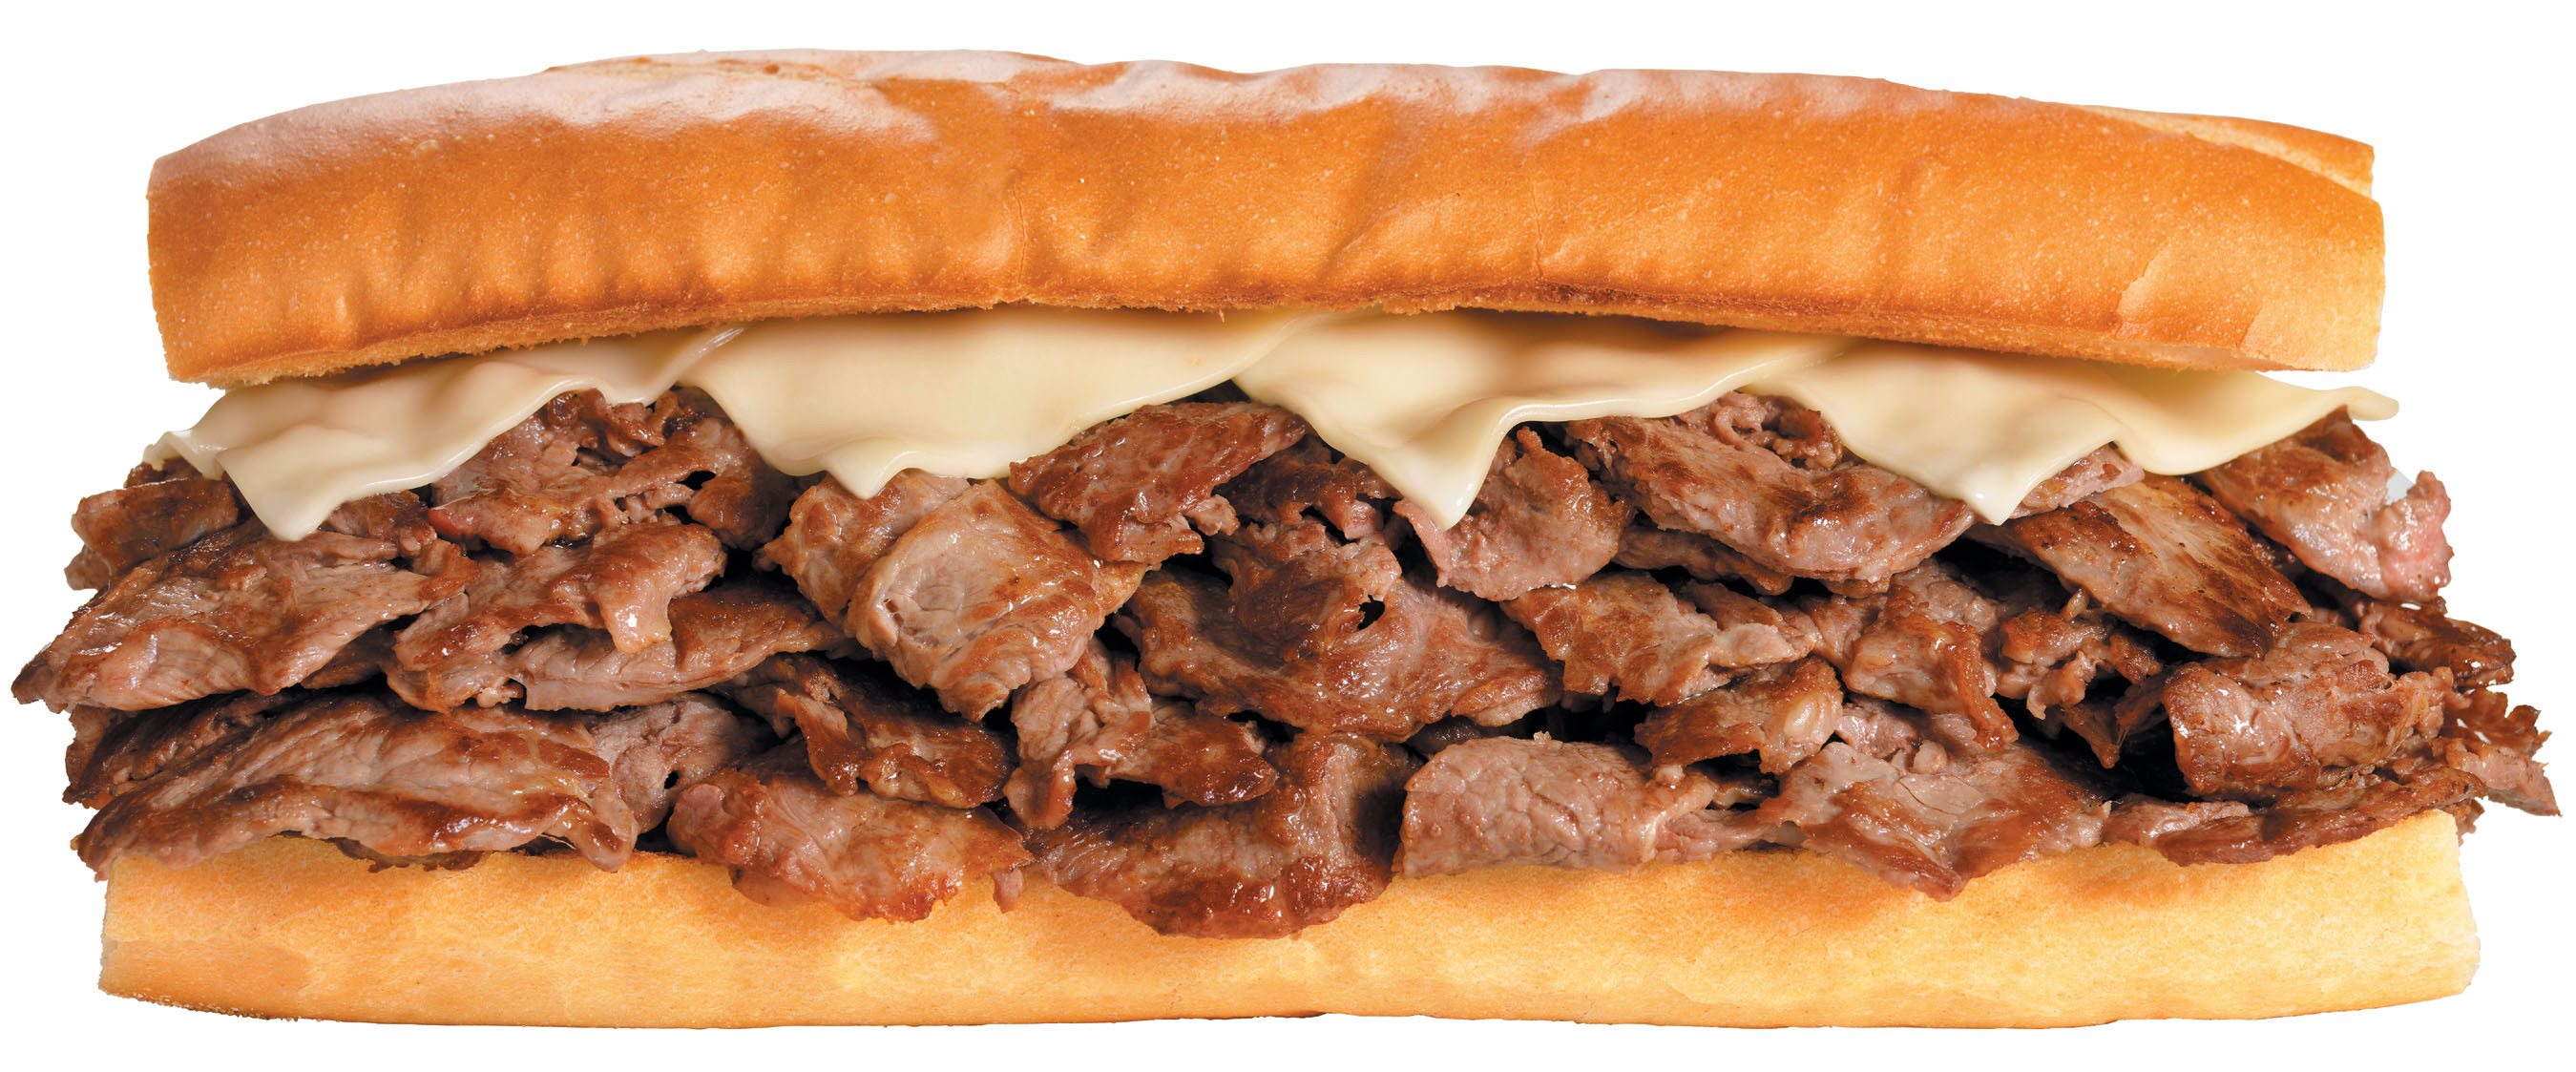 Steak And Cheese Sandwiches  D Angelo Grilled Sandwiches Introduces a e Pound Steak